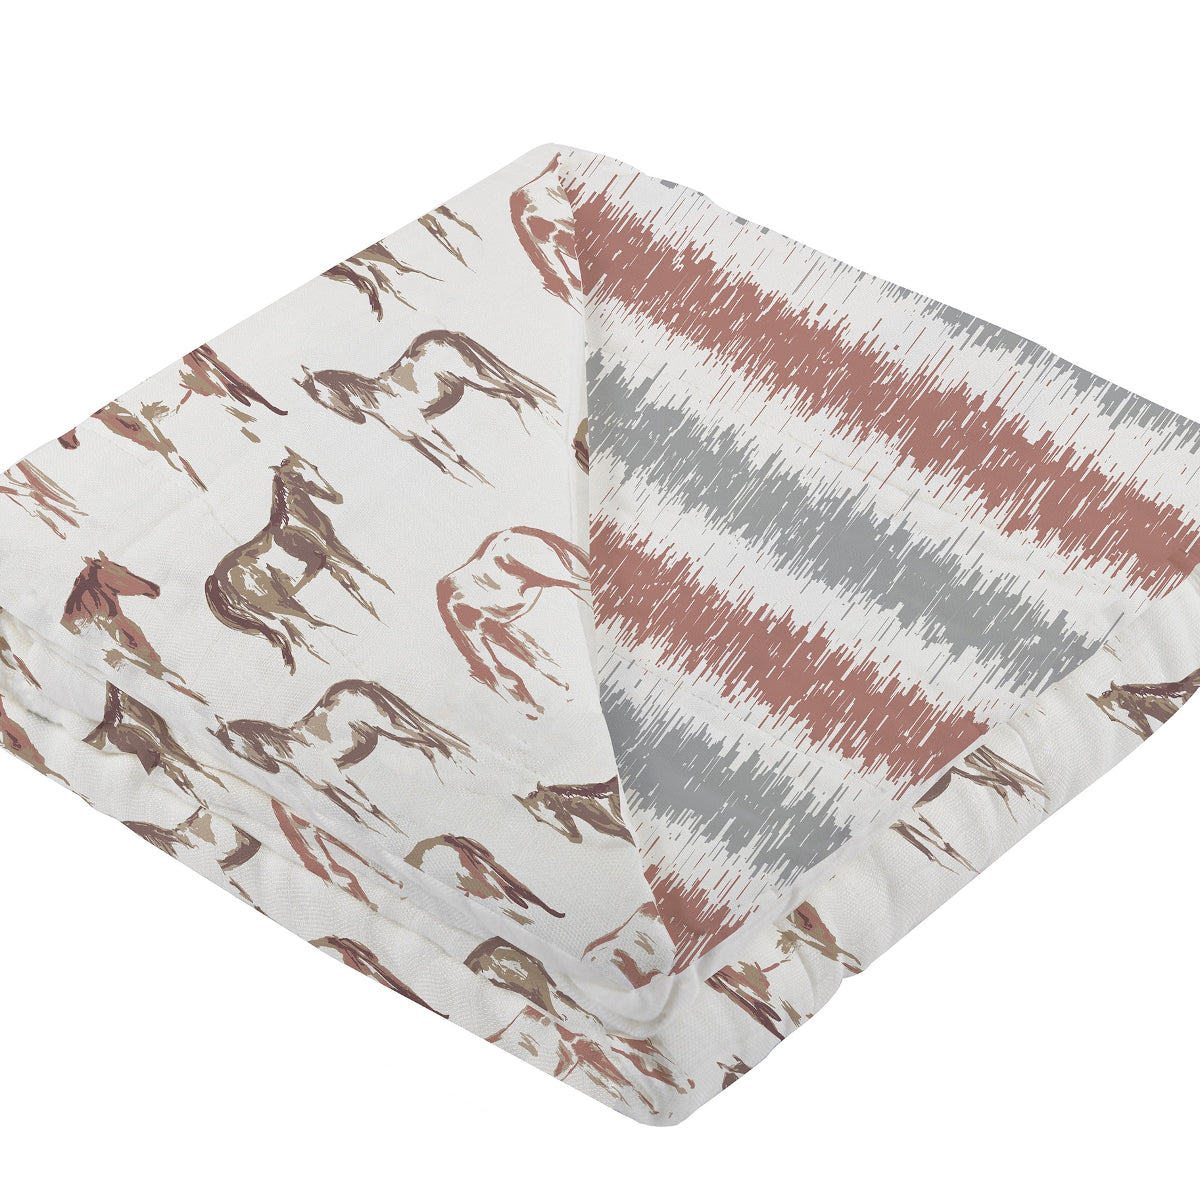 Newcastle Classics Kids' Wild Horses & Western Stripe Double Sided Blanket